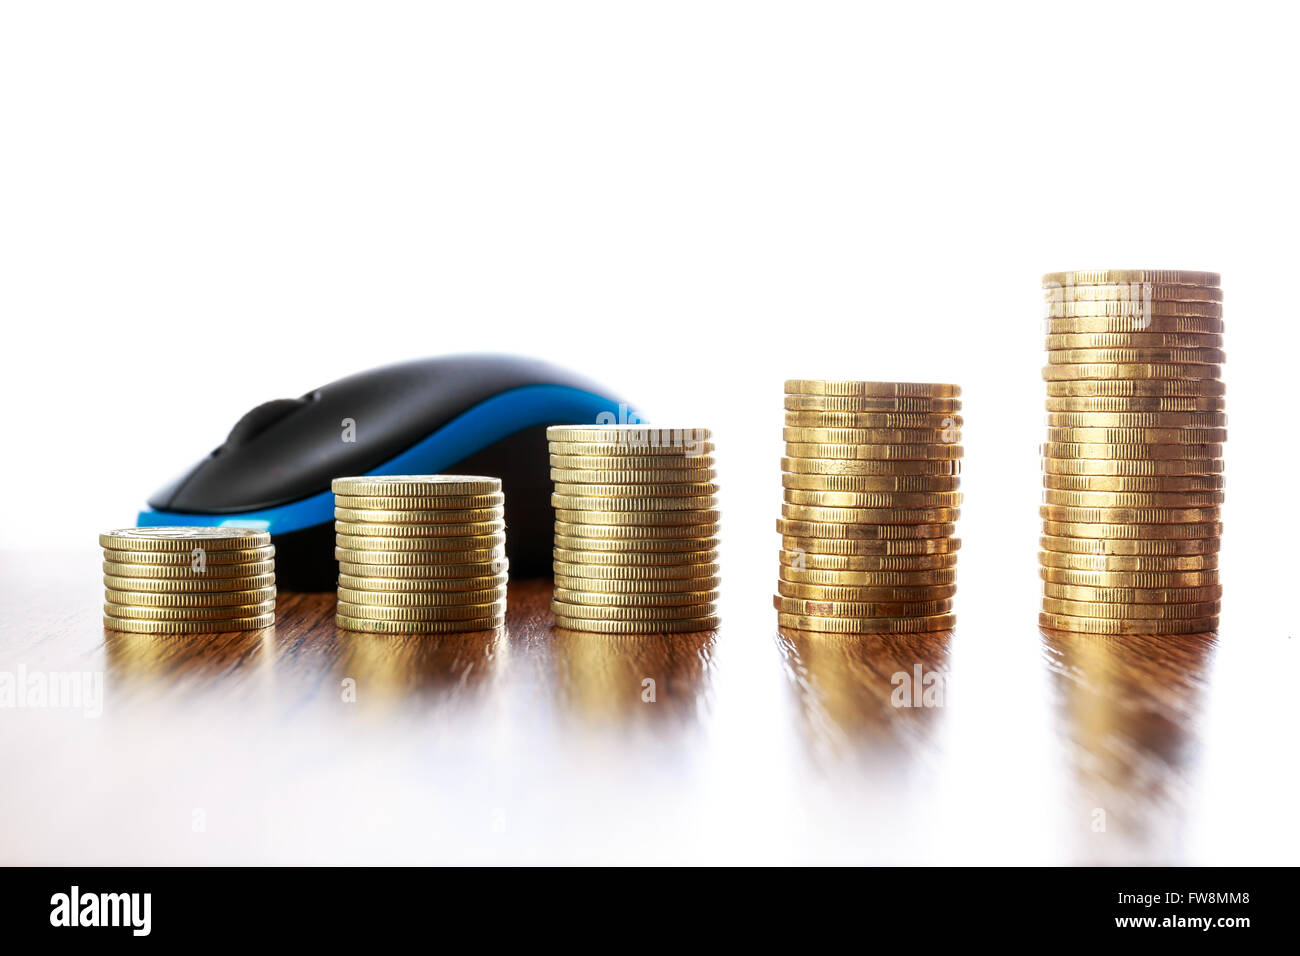 Towers of coins on wooden table in front of computer mouse - Stock Image